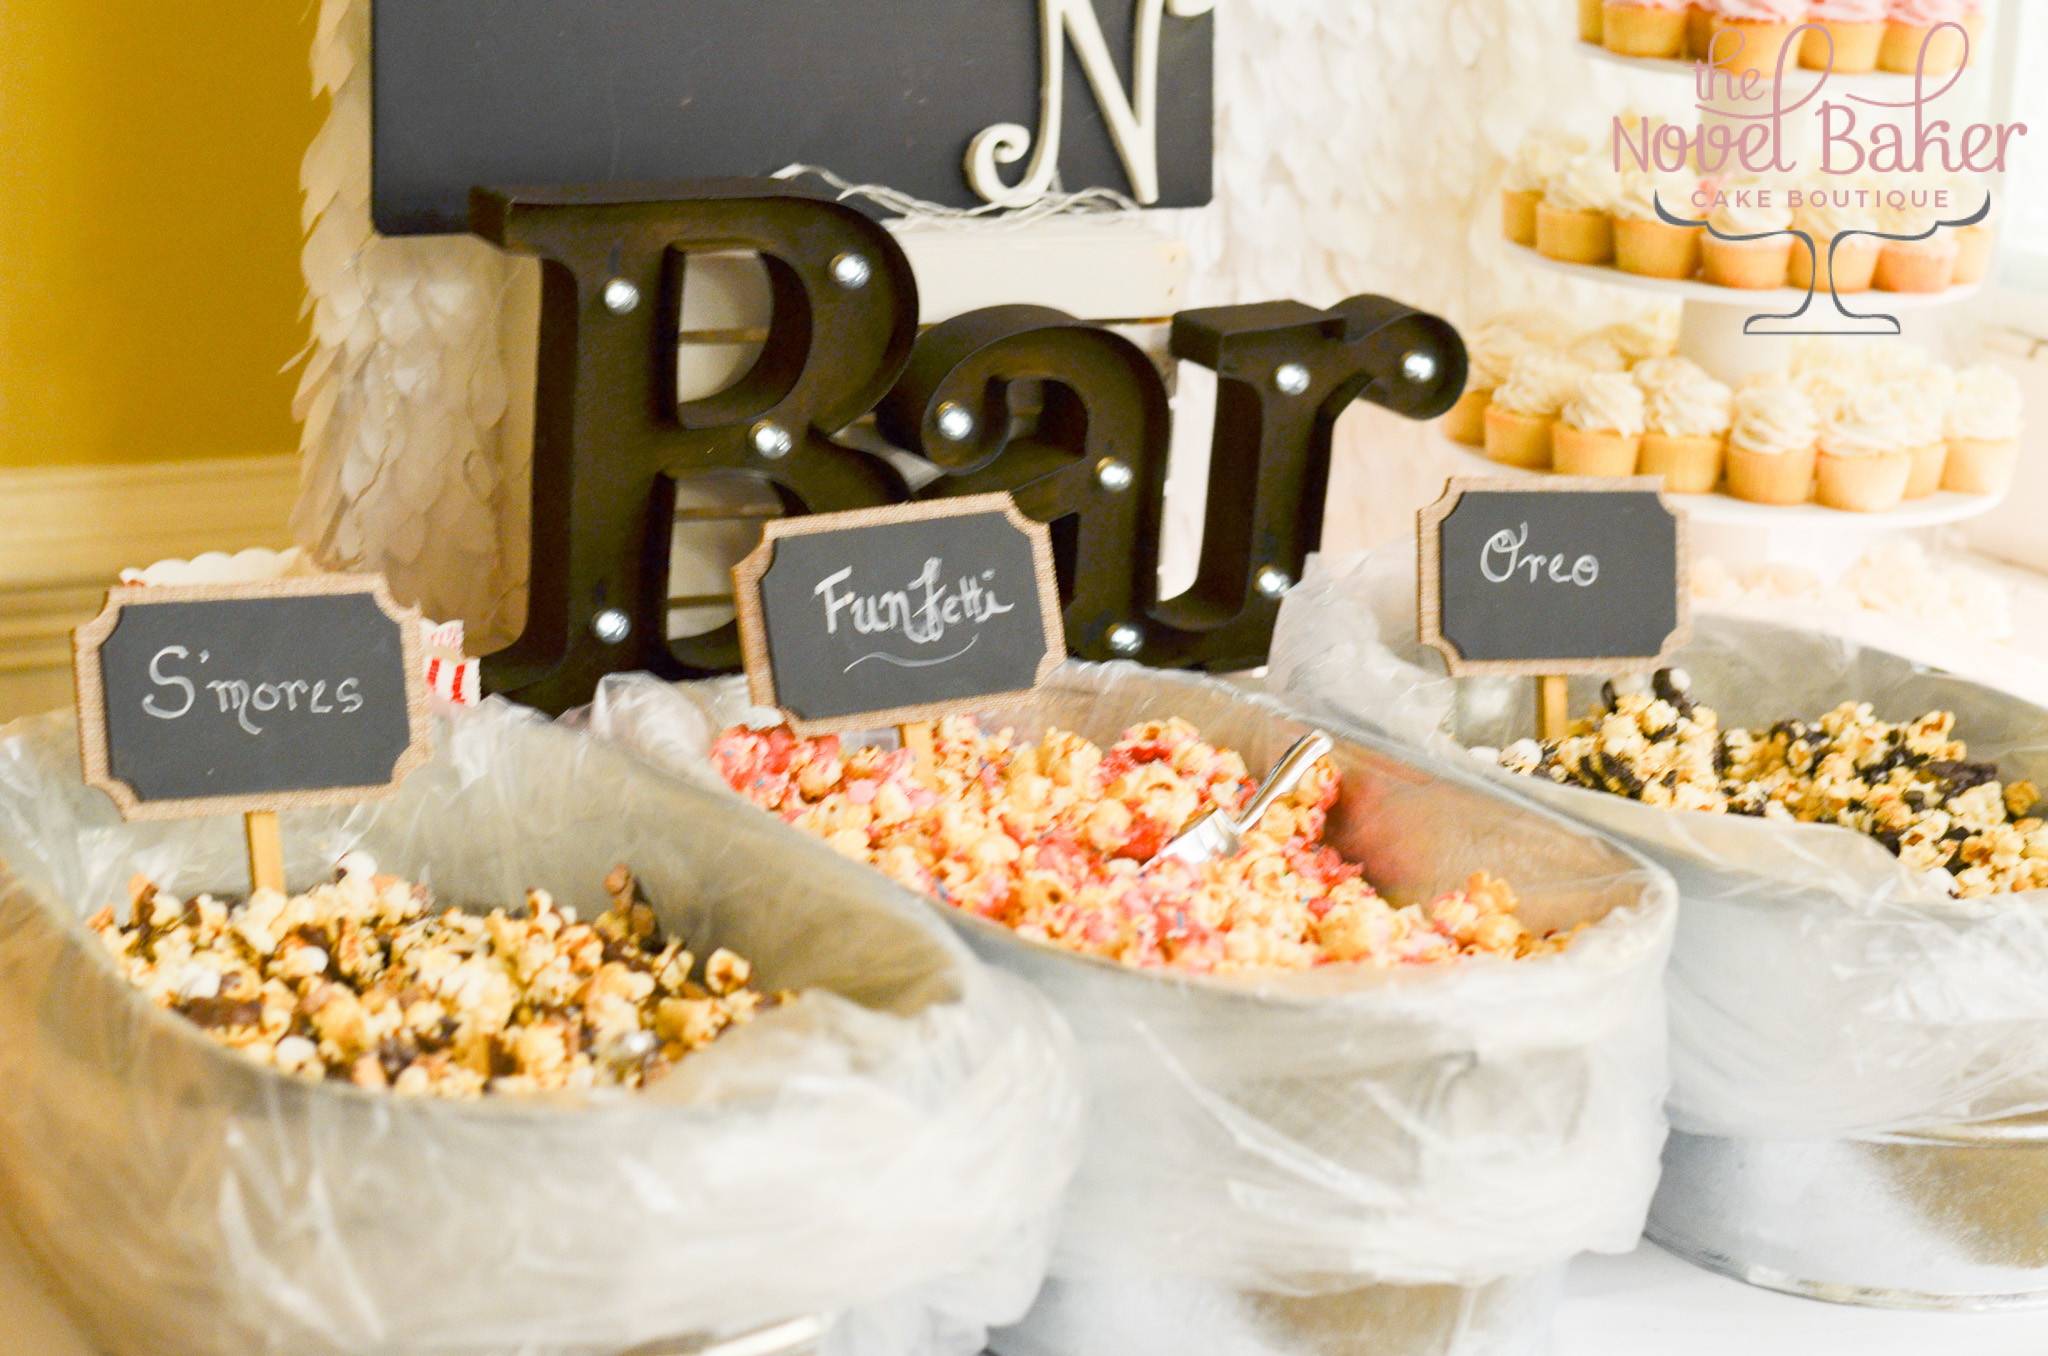 White chocolate drizzled caramel corn with toppings